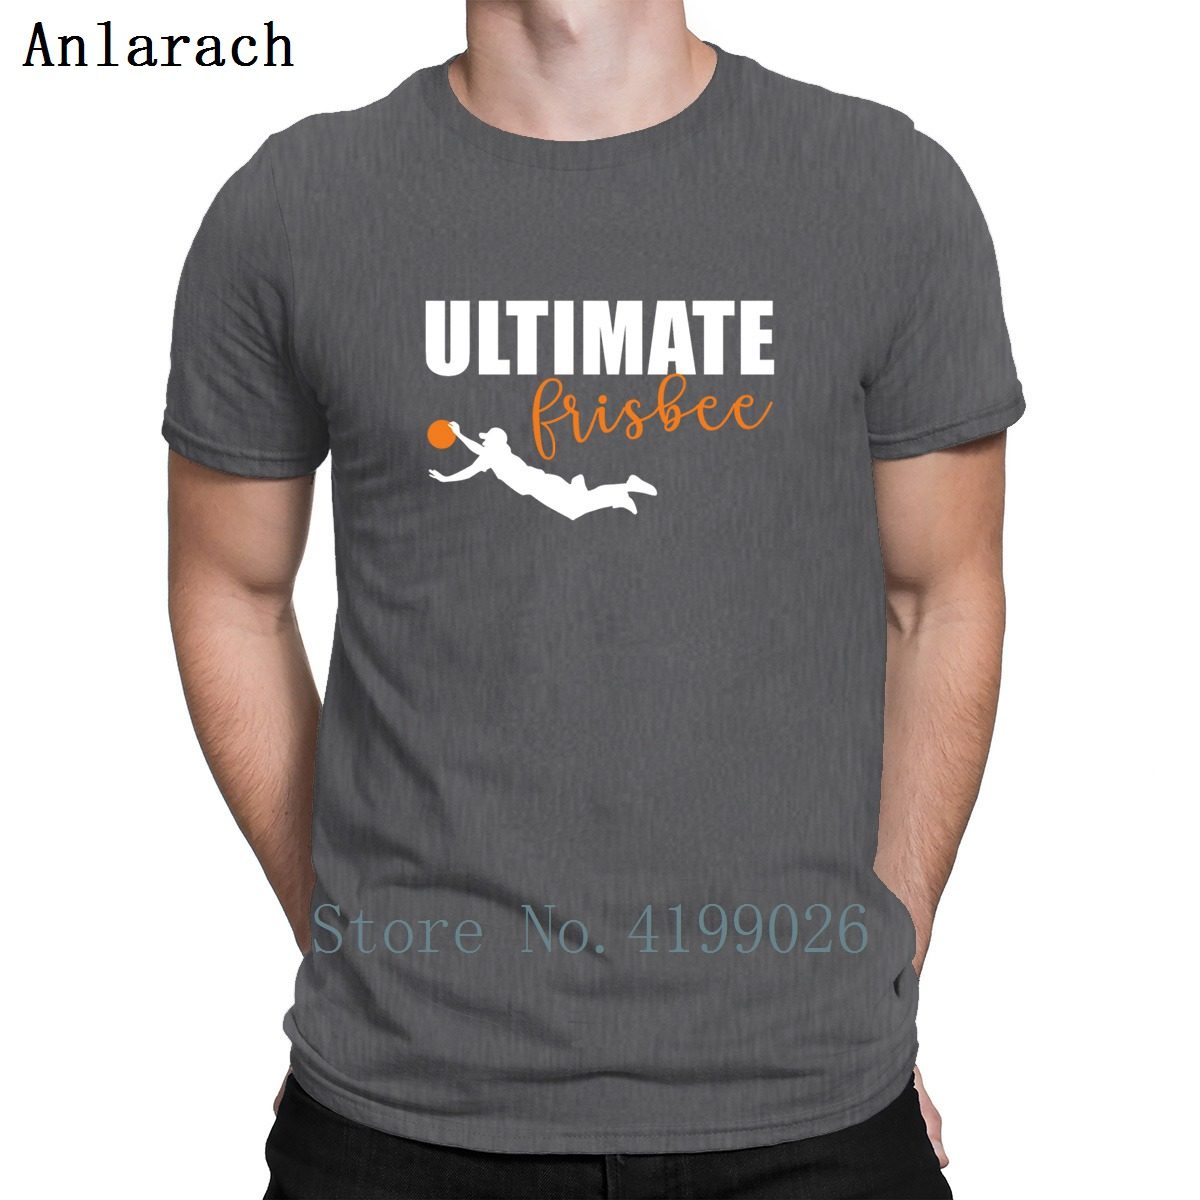 bbf6cd6a4 Ultimate Frisbee T Shirt High Quality Custom Summer Top Cool T Shirt For Men  Round Collar Homme Sunlight Great-in T-Shirts from Men's Clothing on ...